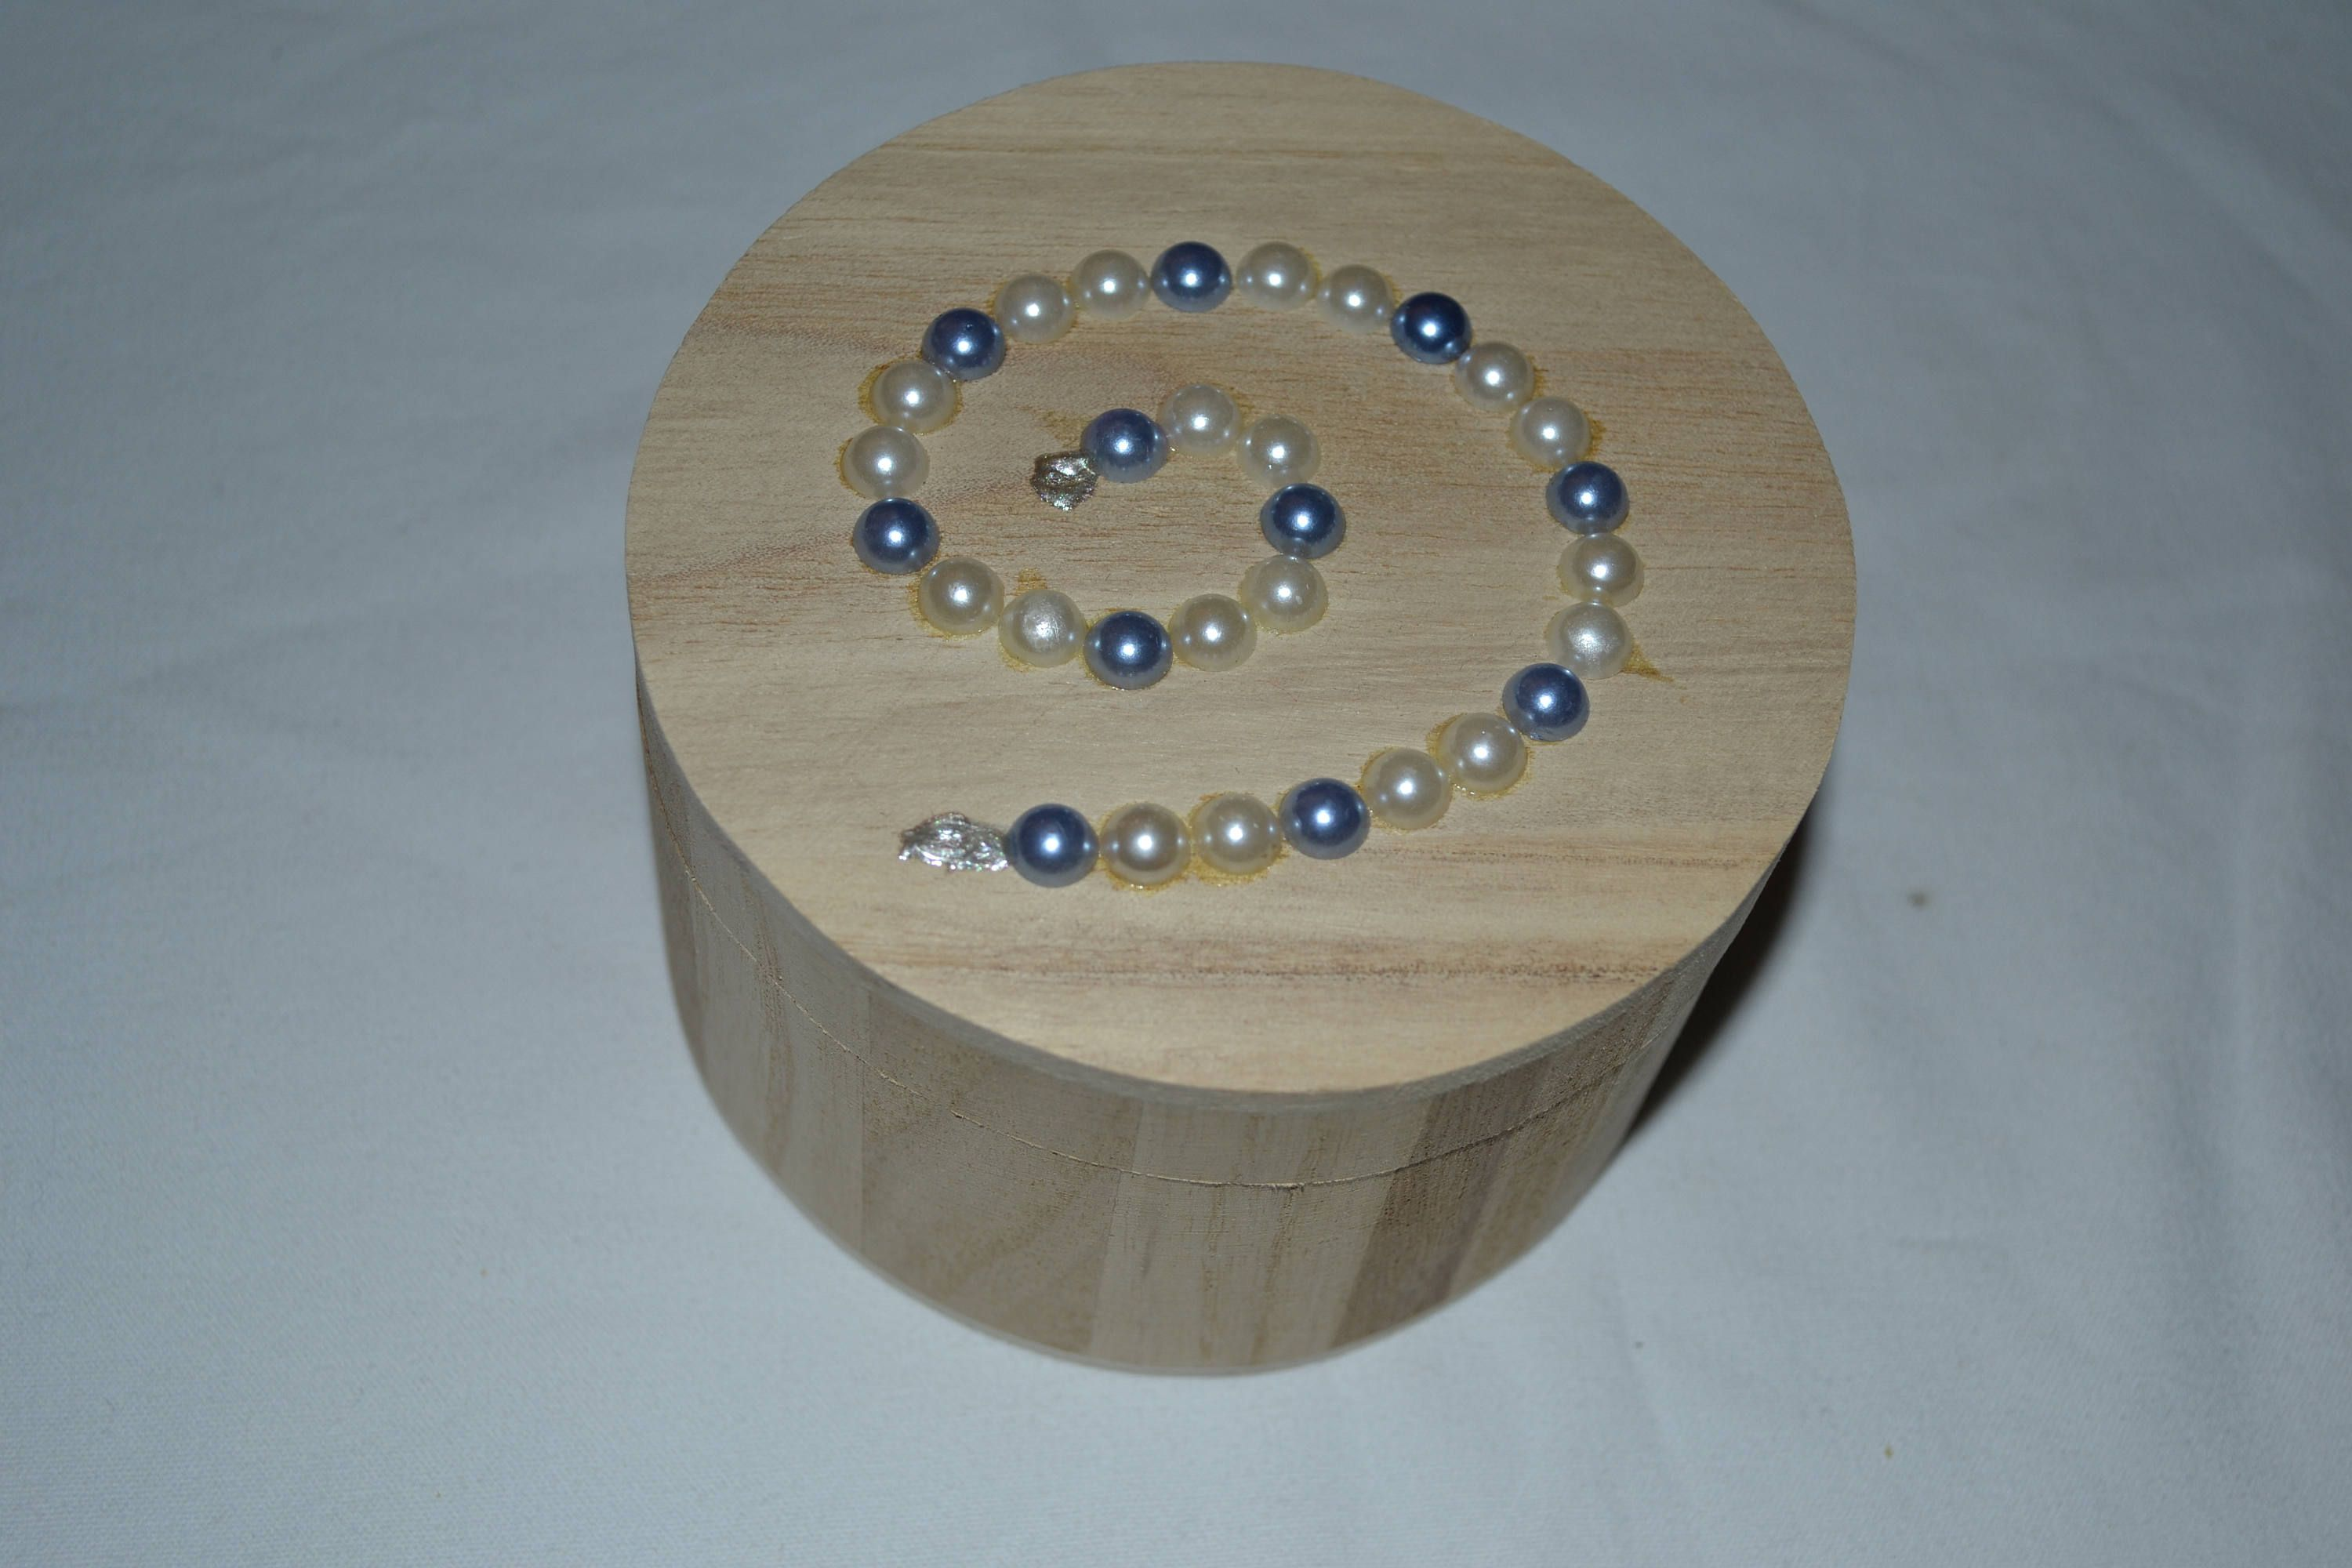 Round Jewelry Box Jewelry Case Decorated Blue And White Beaded